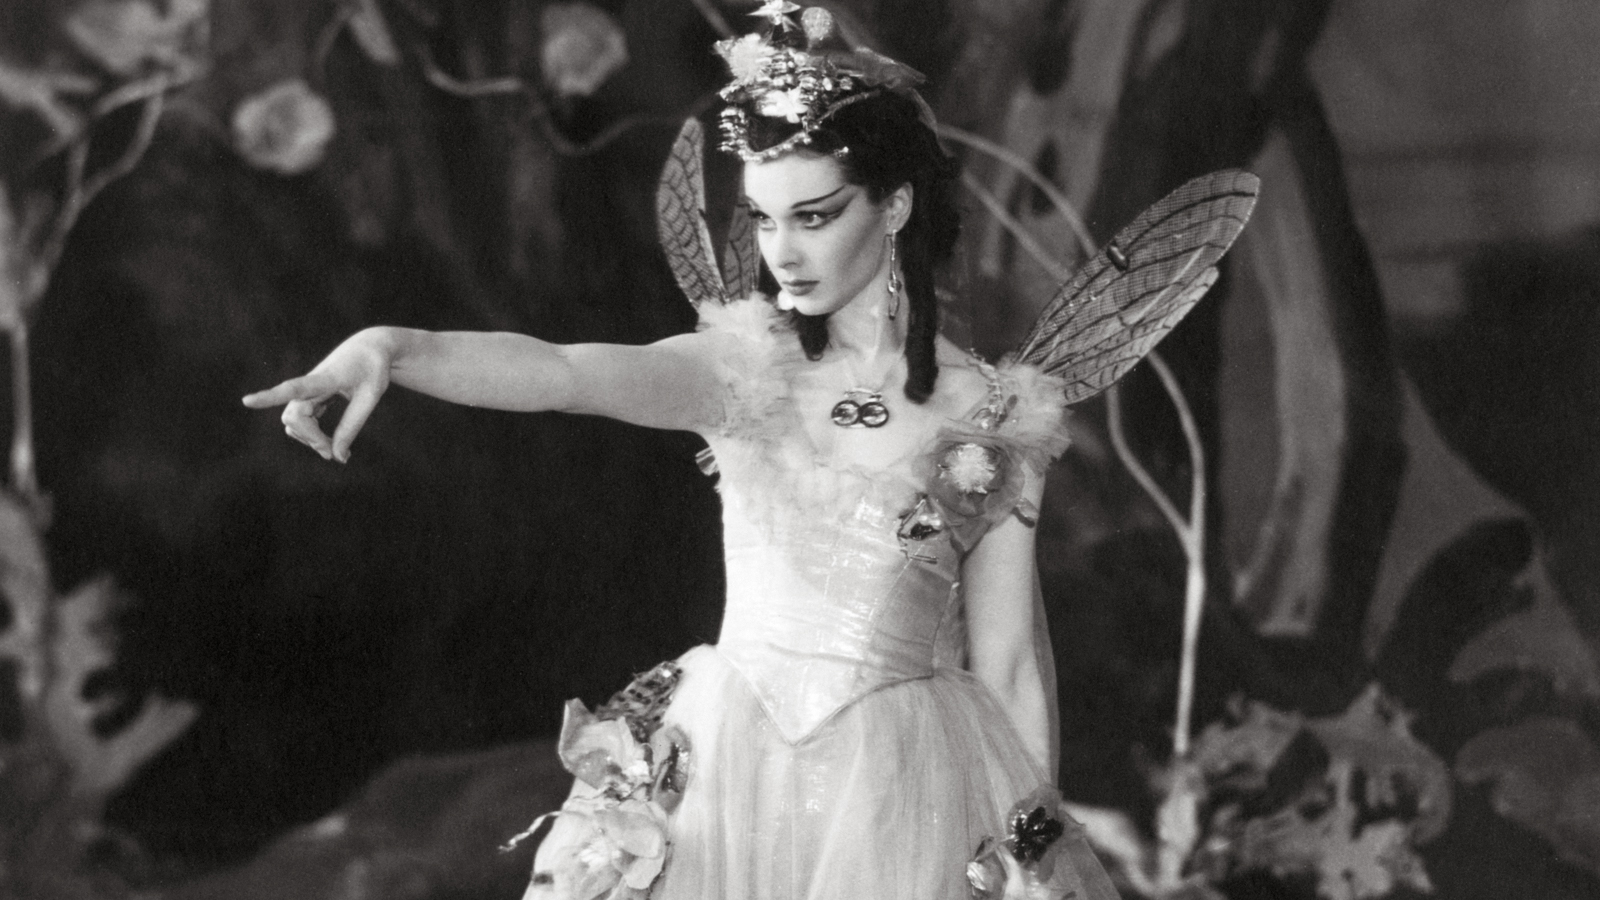 Dream, illusion and doubling in A Midsummer Night's Dream